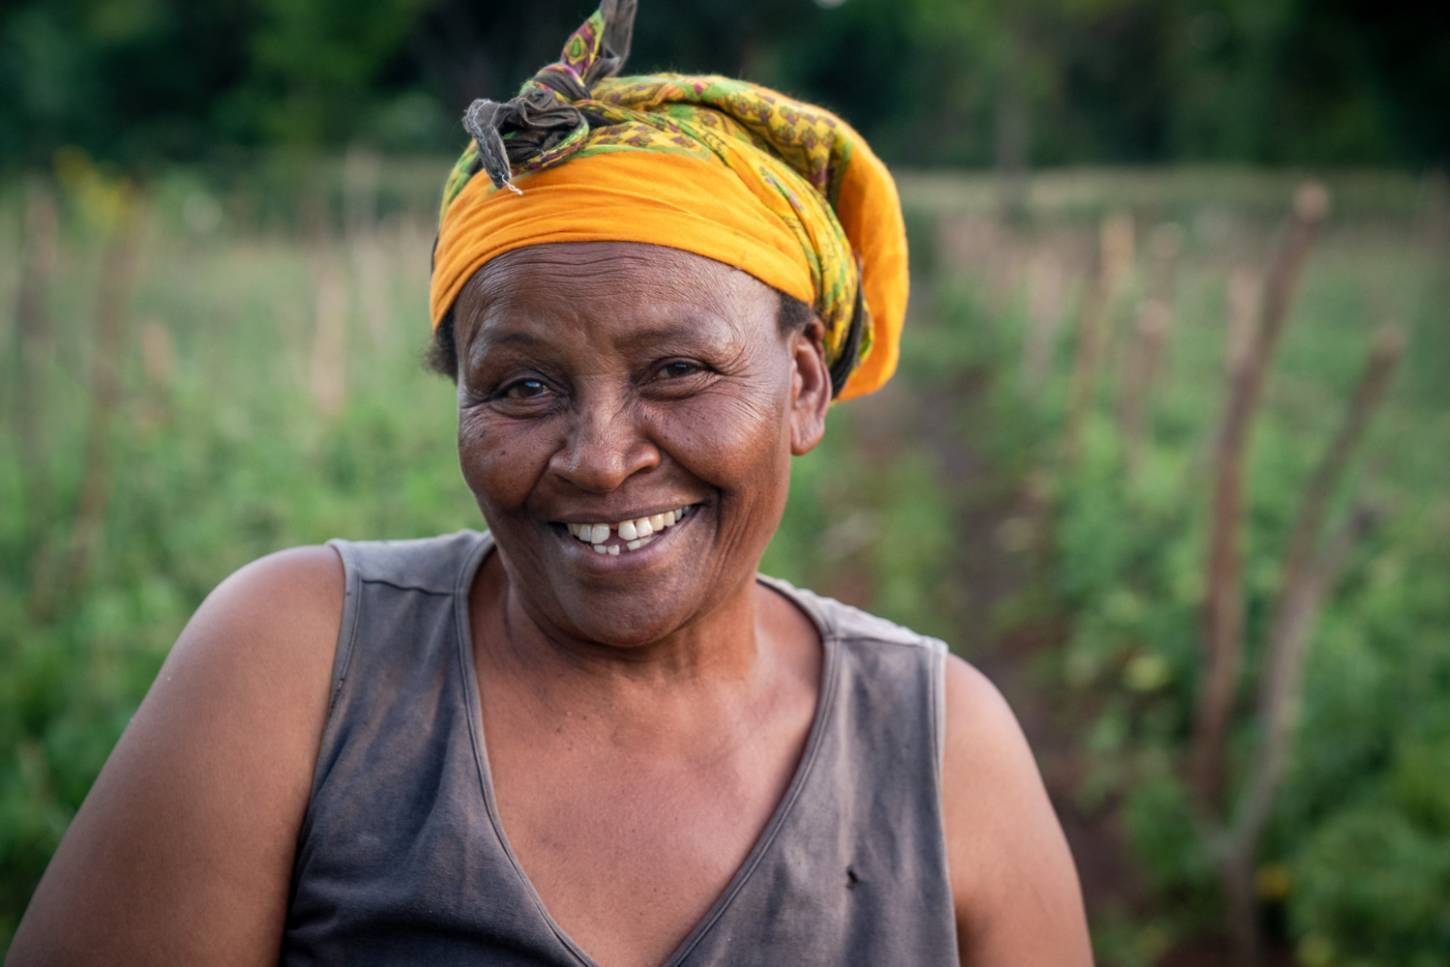 Improve the life of a smallholder farmer